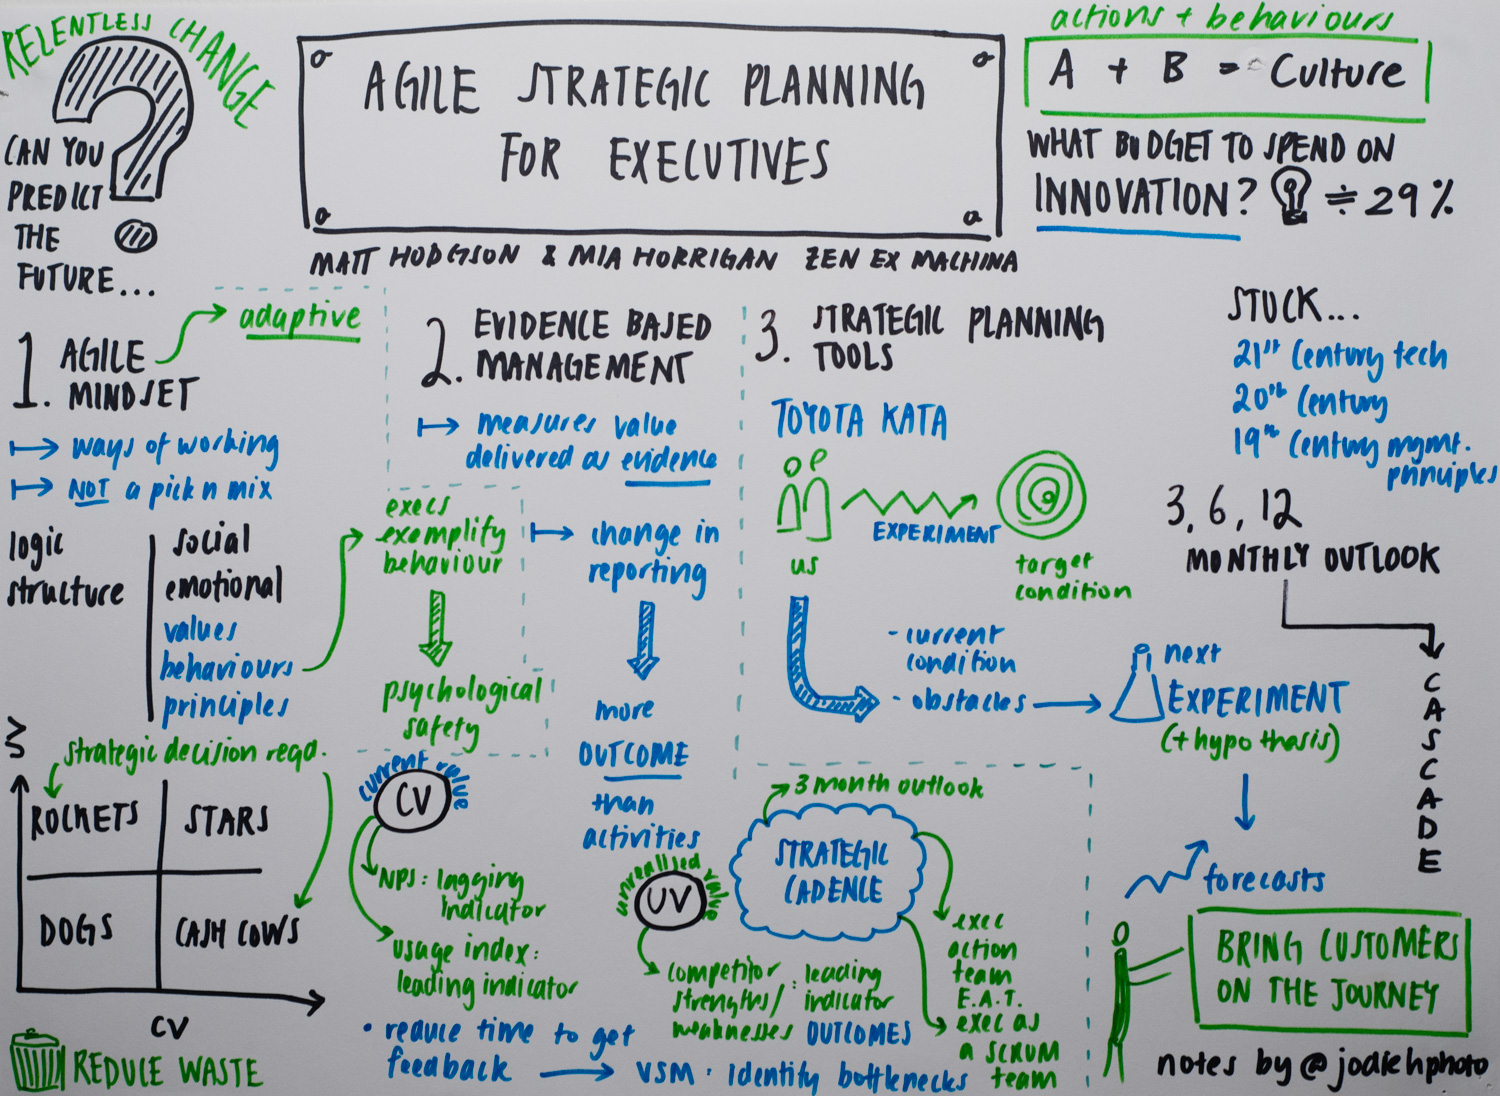 agile strategic planning for executives